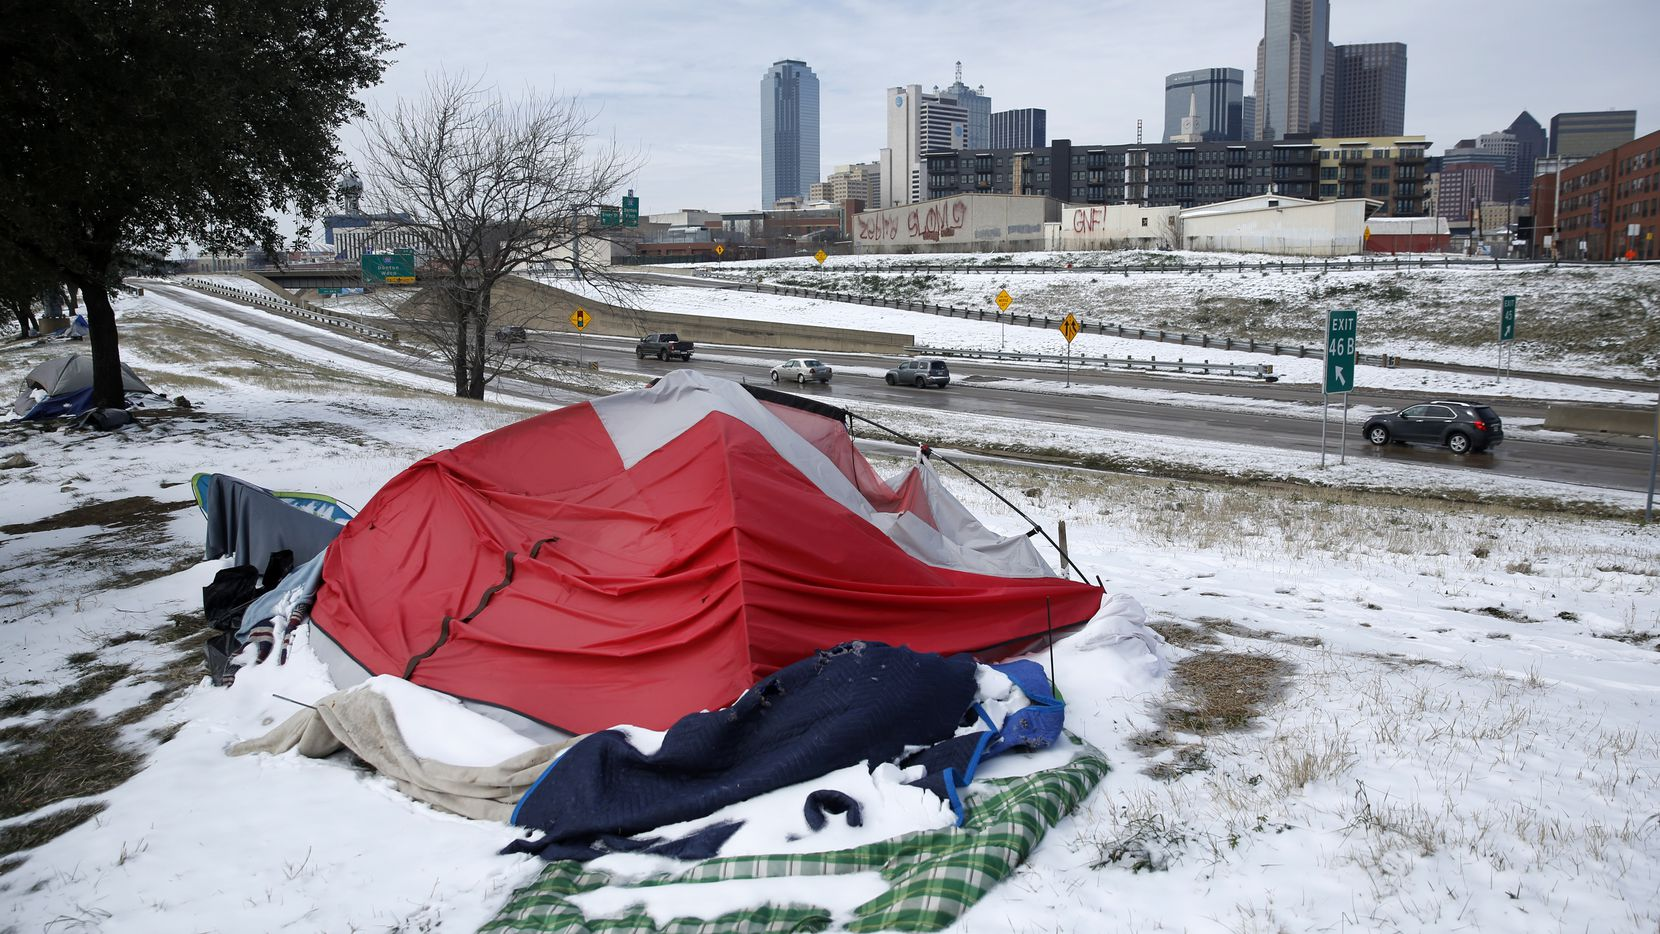 Snow-covered tents pitched along Interstate 30 were abandoned by their owners as a snow storm and subfreezing temperatures rolled into downtown Dallas. A nearby warming shelter at the Kay Bailey Hutchison Convention Center was set up by OurCalling and was housing about 700 people who found refuge from the deadly cold temperatures in Hall E-F.